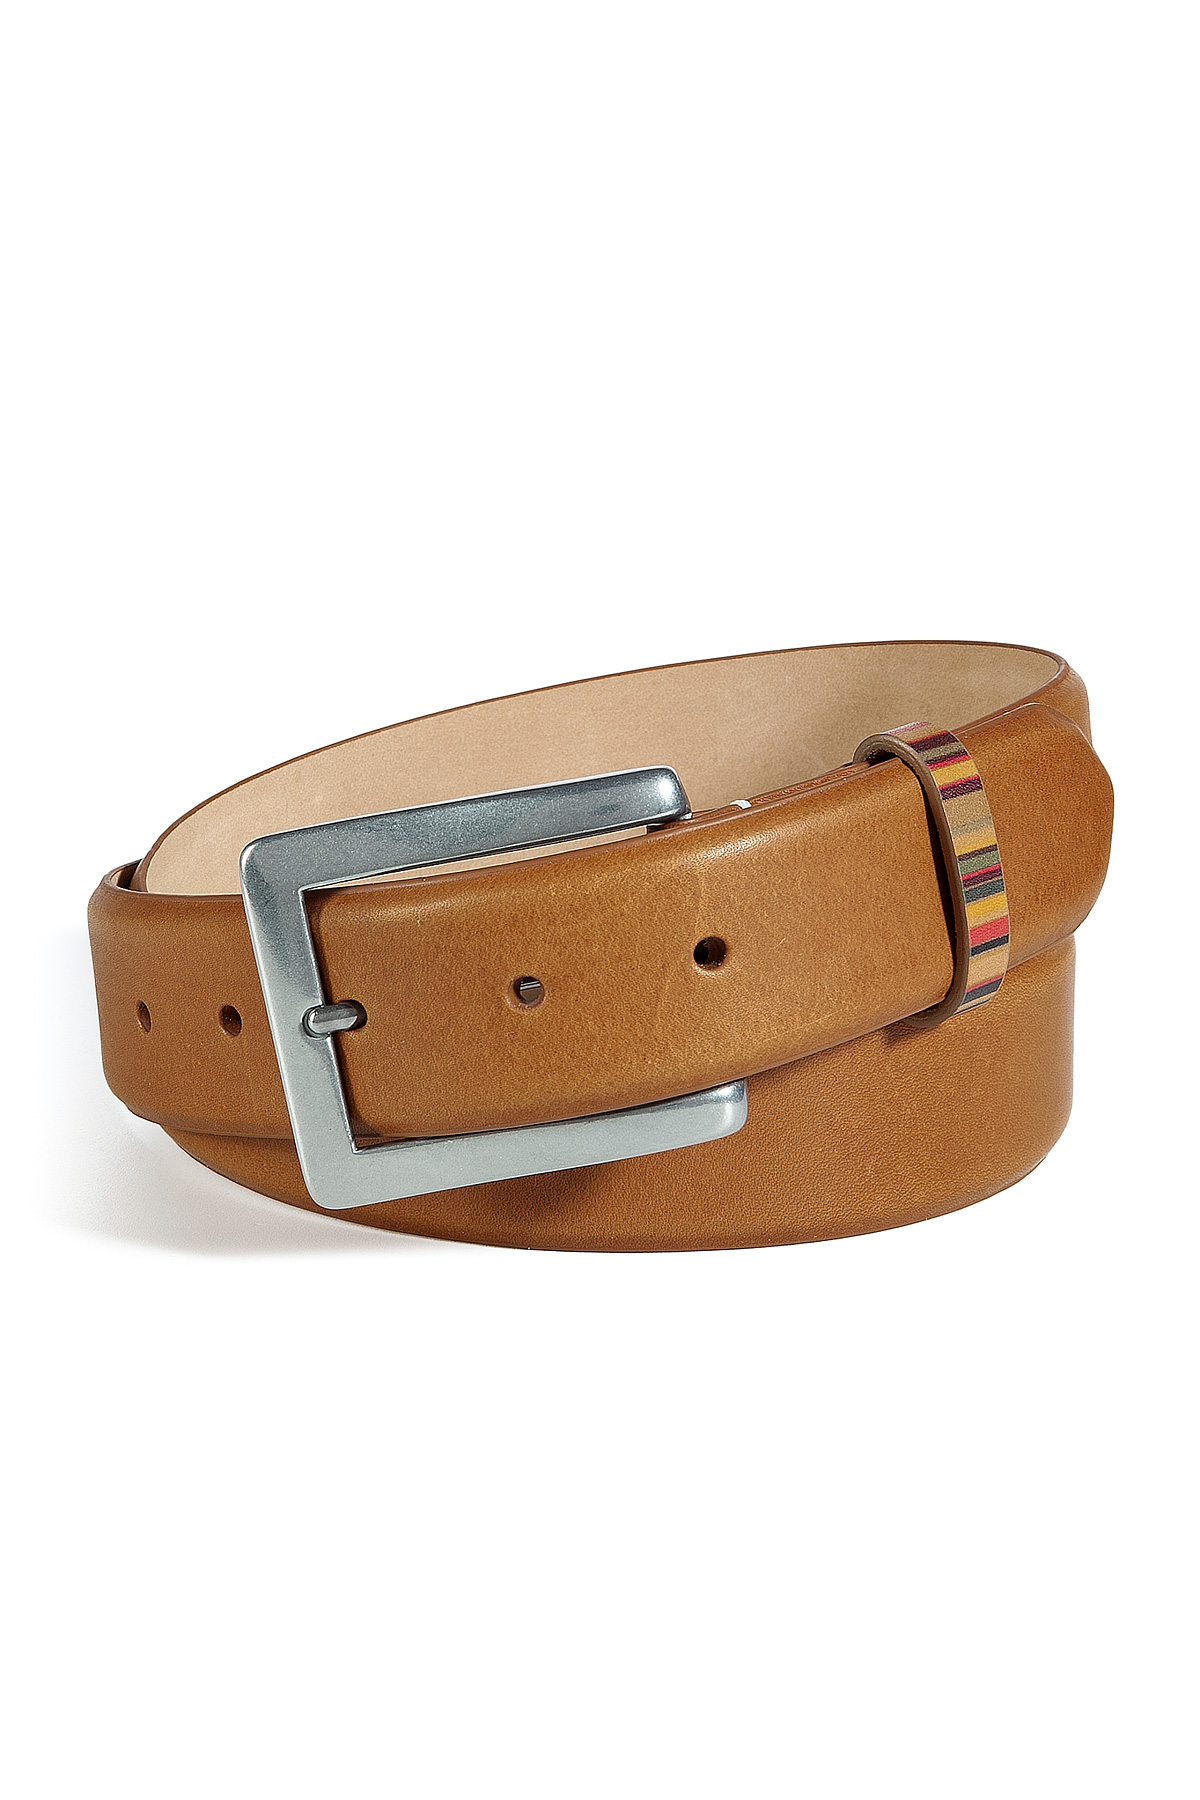 paul smith light brown leather belt in brown for lyst